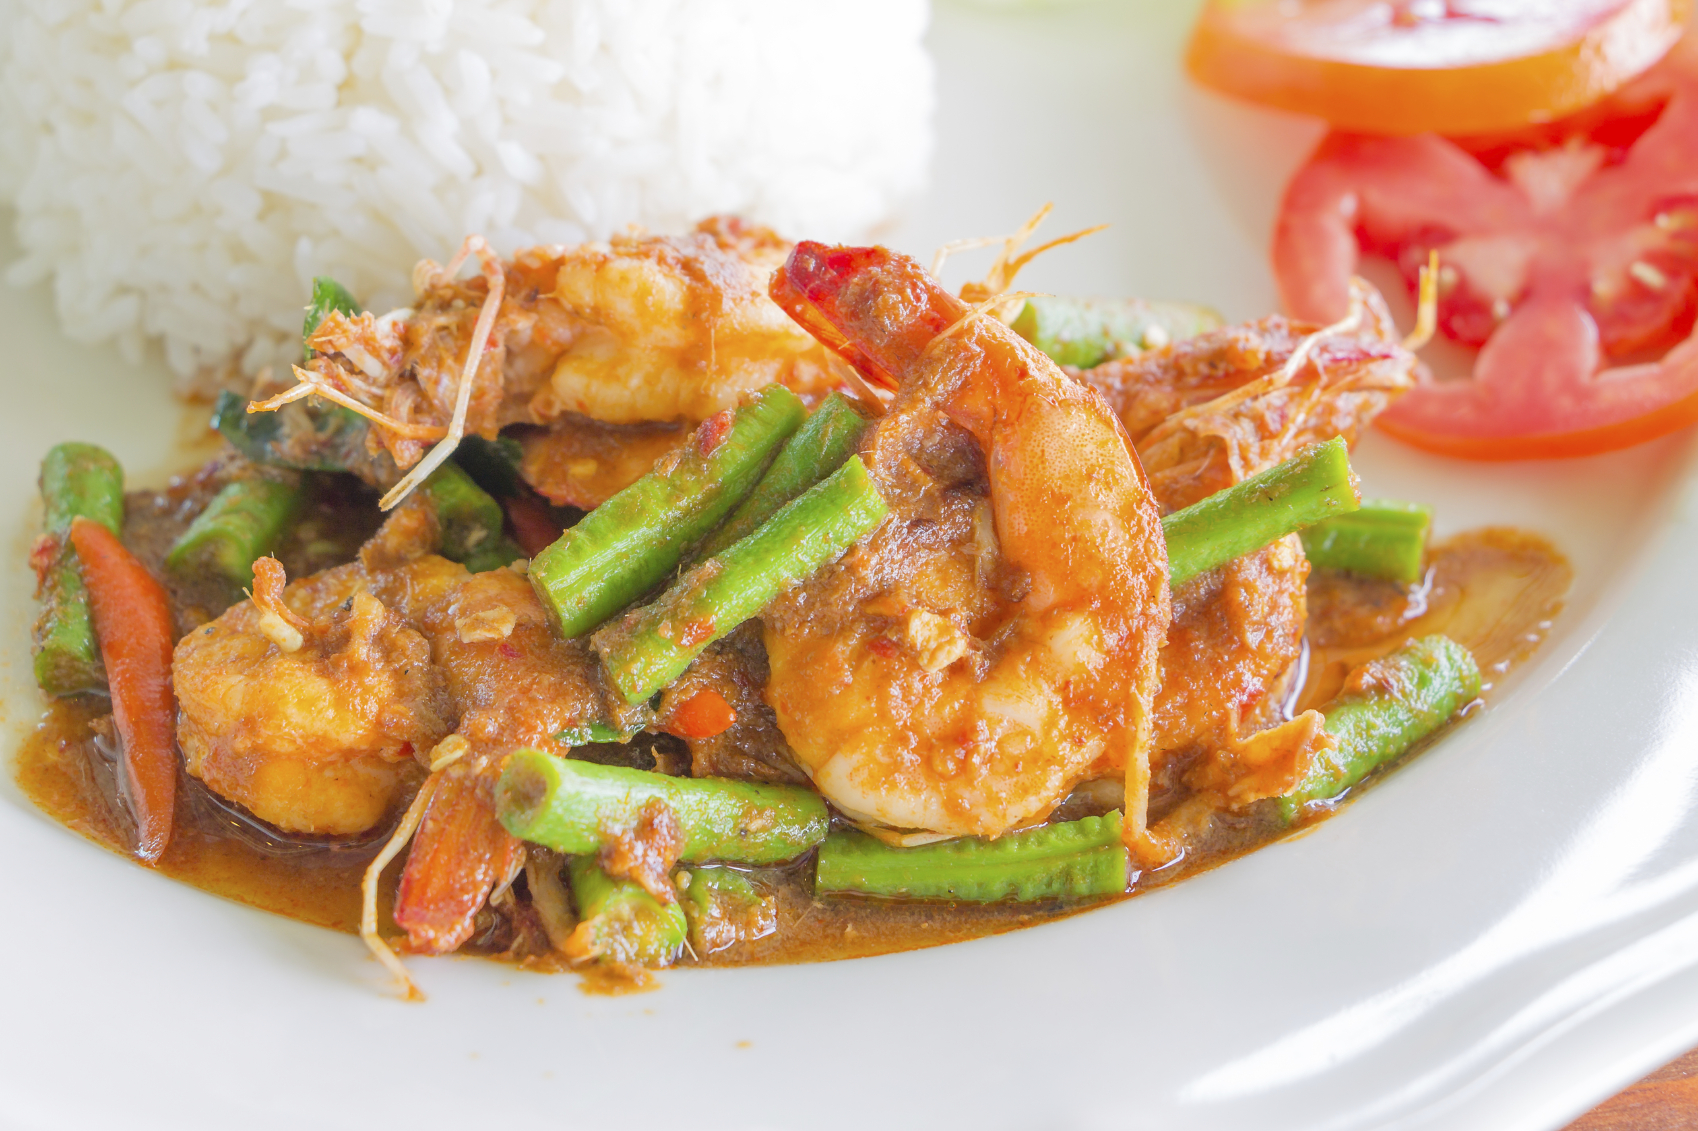 Prawn curry on bed of rice